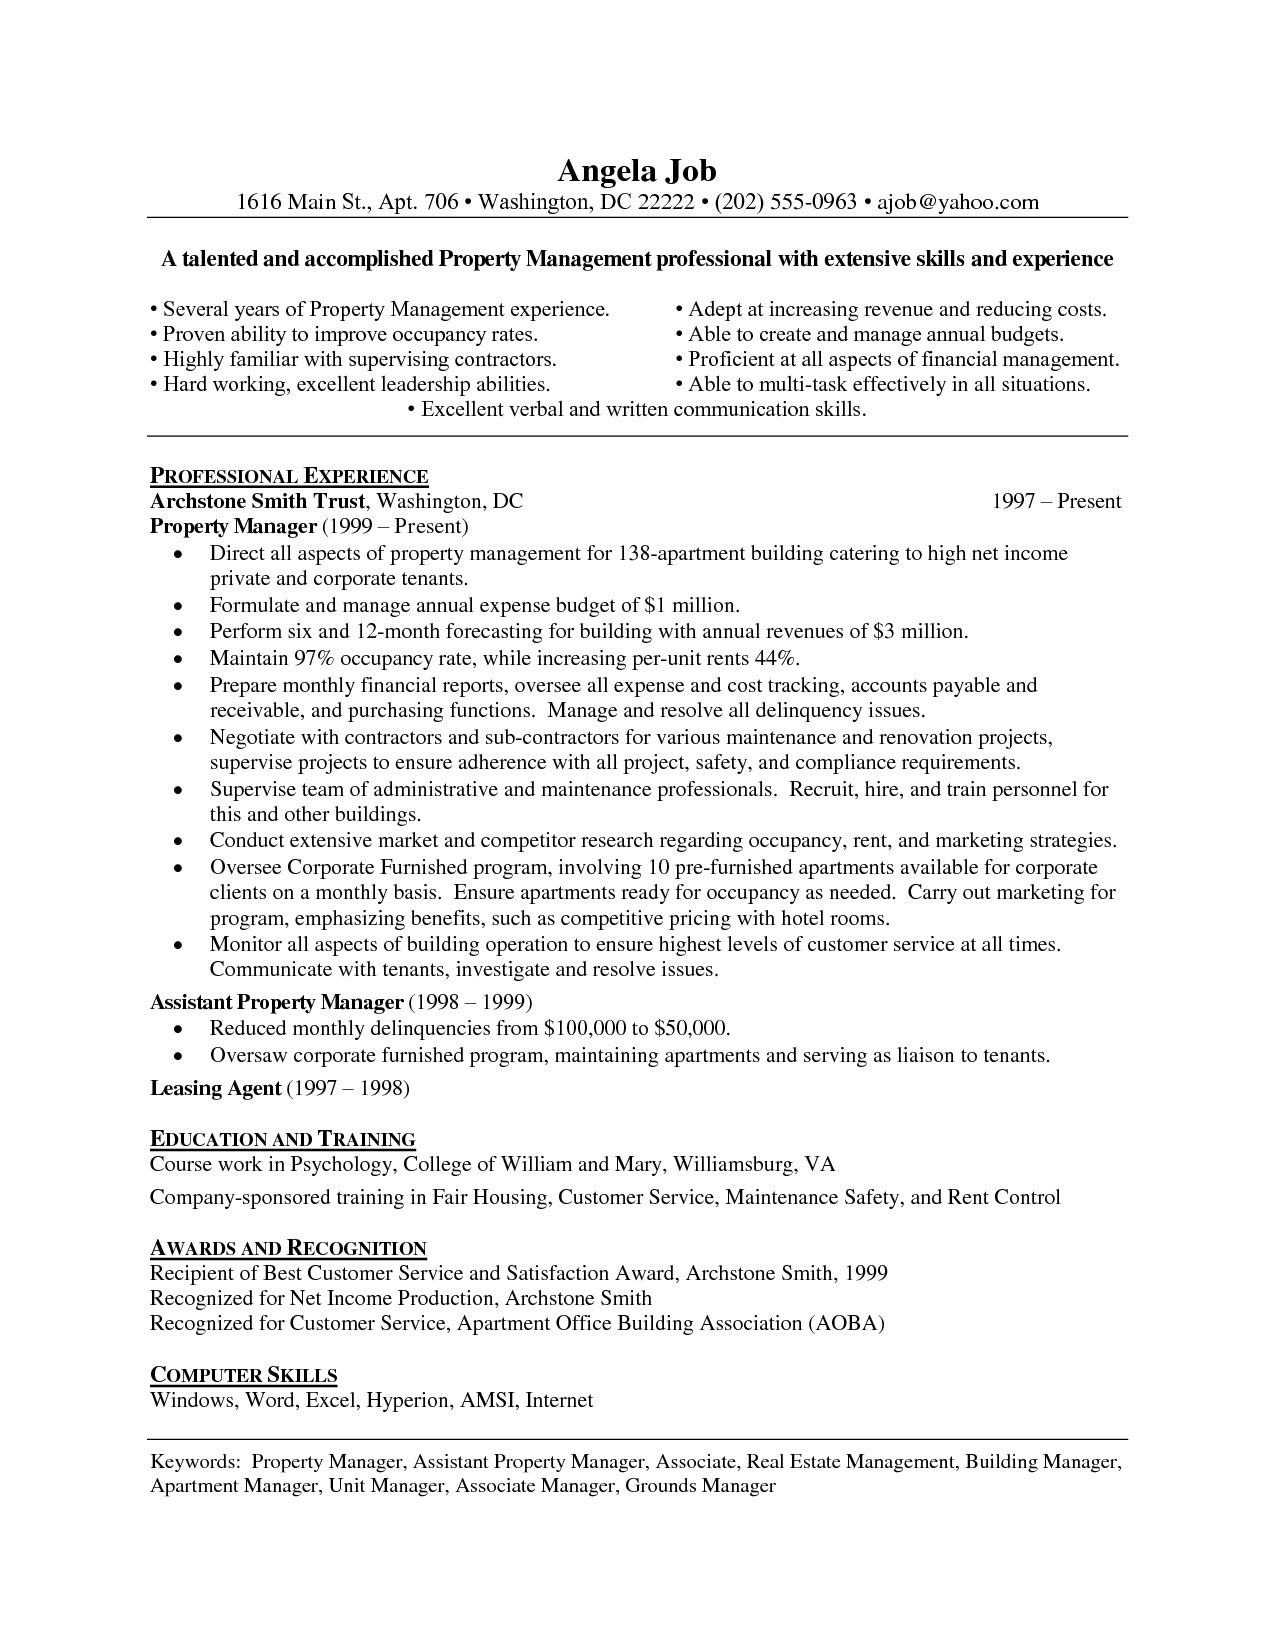 Property Manager Resume Sample - Property Management Resume Examples Reference assistant Property